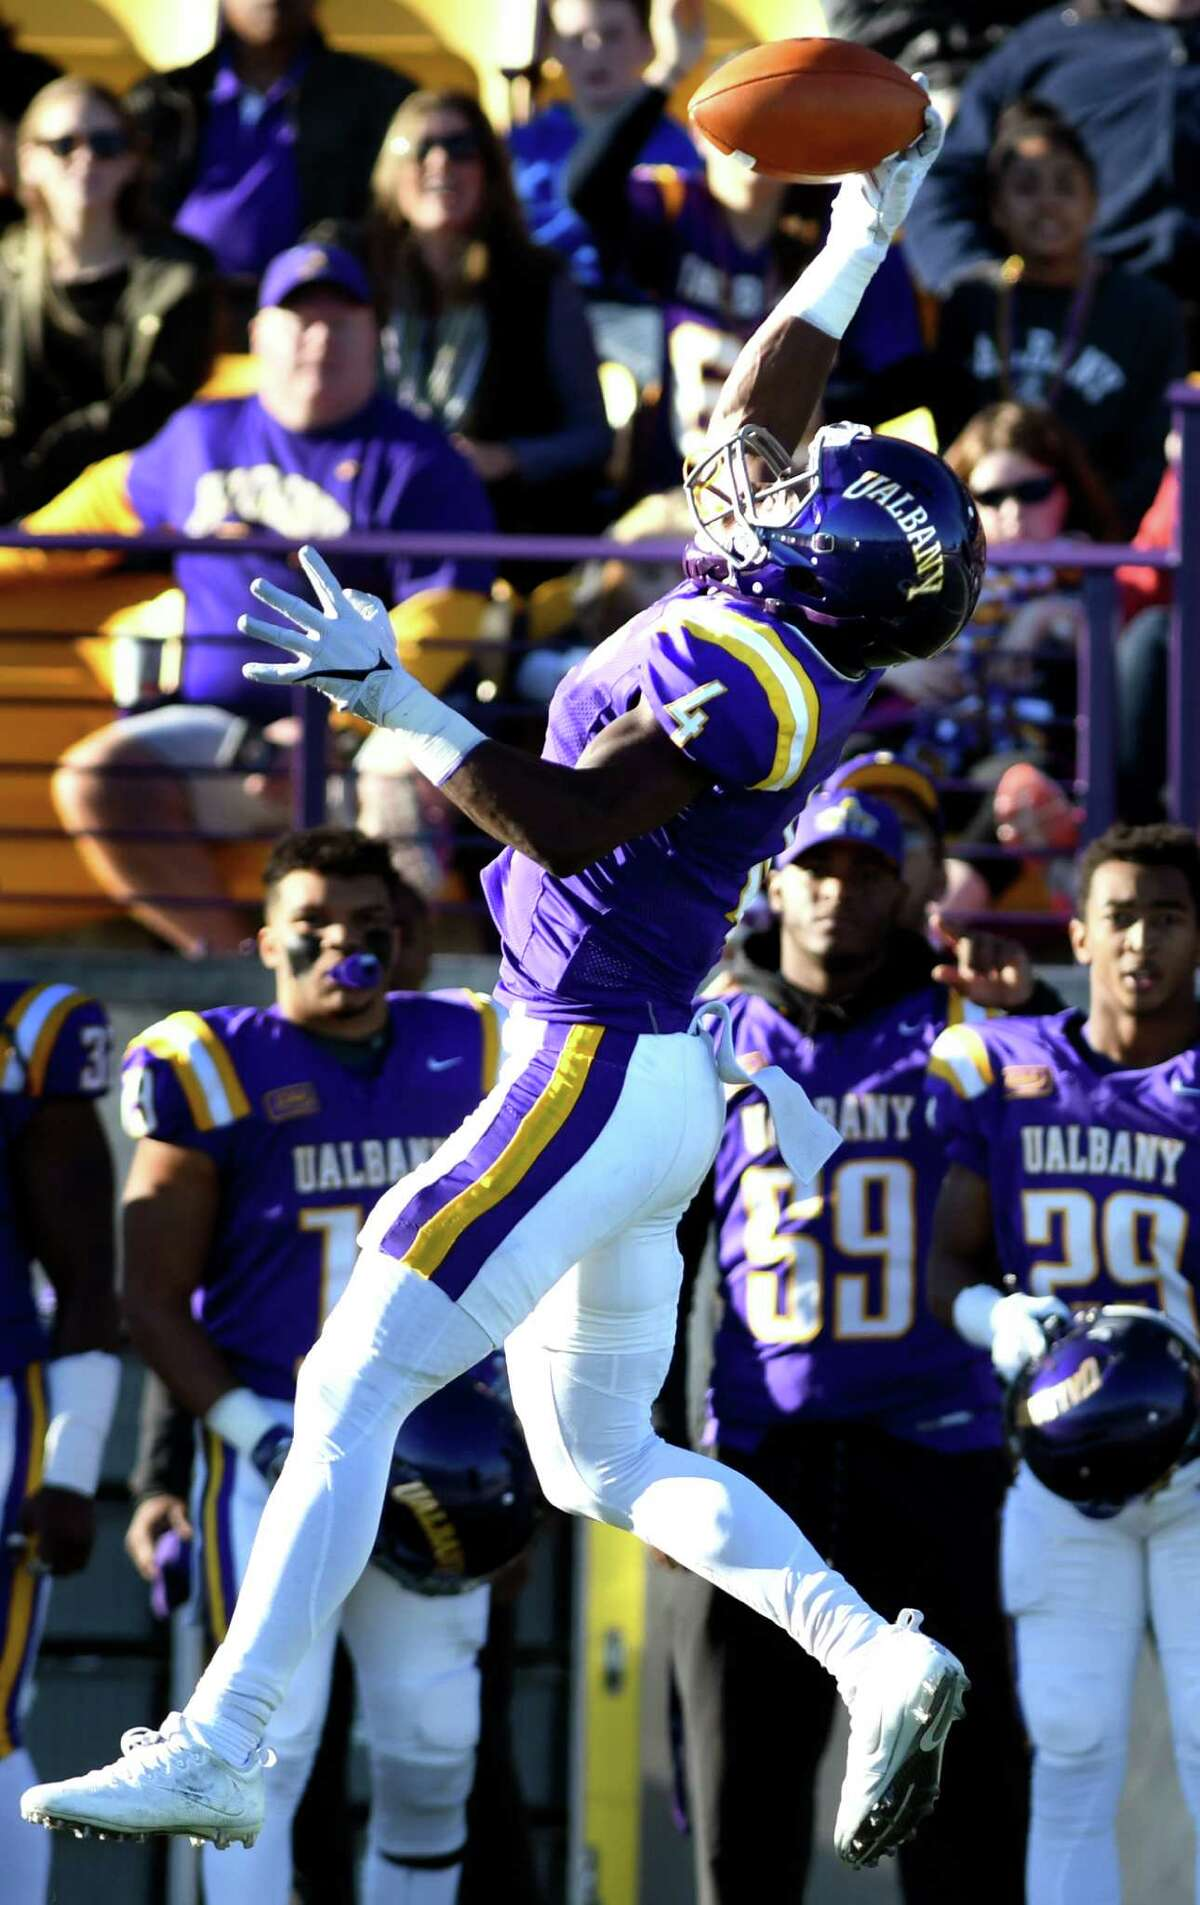 UAlbany's Jordan Crockett hauls in a pass during their football game against Stony Brook on Saturday, Nov 19, 2016, at Casey Stadium in Albany, N.Y. (Cindy Schultz / Times Union)